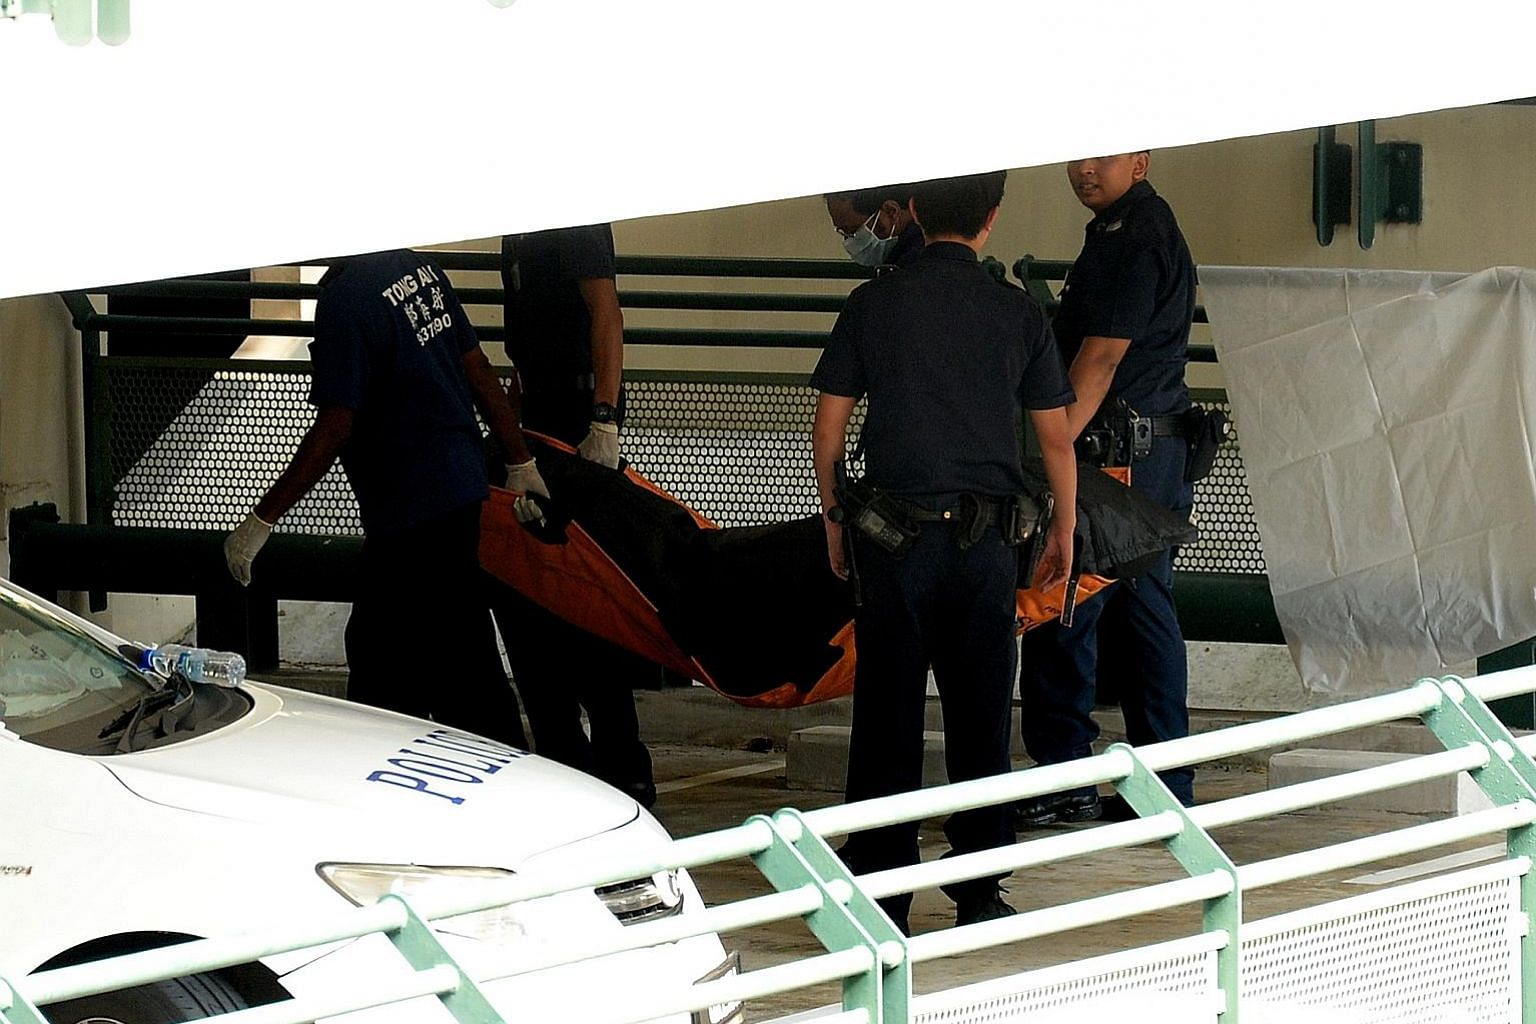 Ms Atika Dolkifli's body was found at a multi-storey carpark in Toa Payoh. Syed Maffi Hasan had thrown her over the parapet of a higher deck of the carpark after they argued over the cost of repairs to a mobile phone she had lent to him.